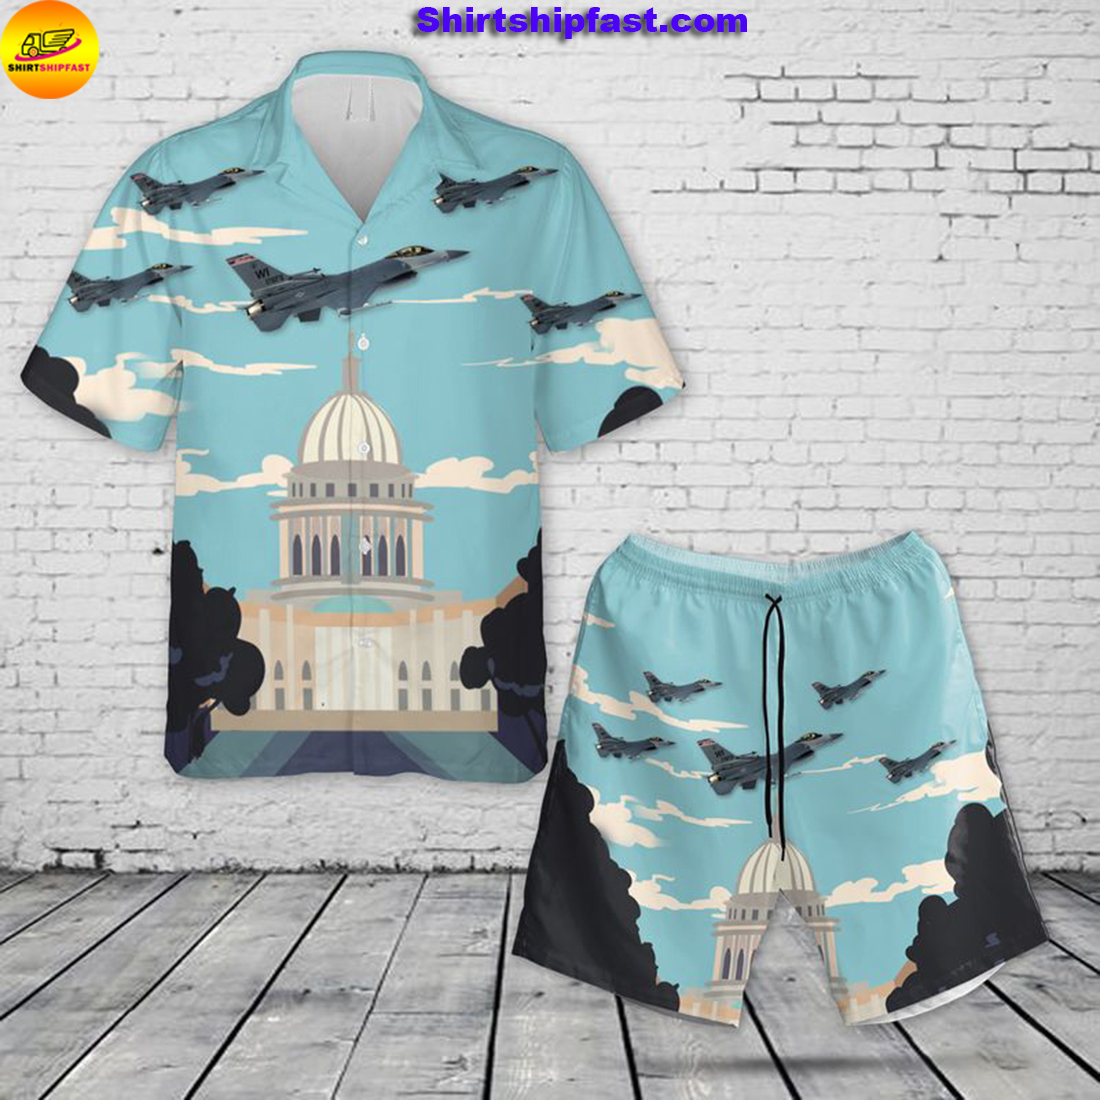 US Air Force Wisconsin Air National Guard 115th Fighter Wing F-16 Fighting Falcon Hawaiian Shirt